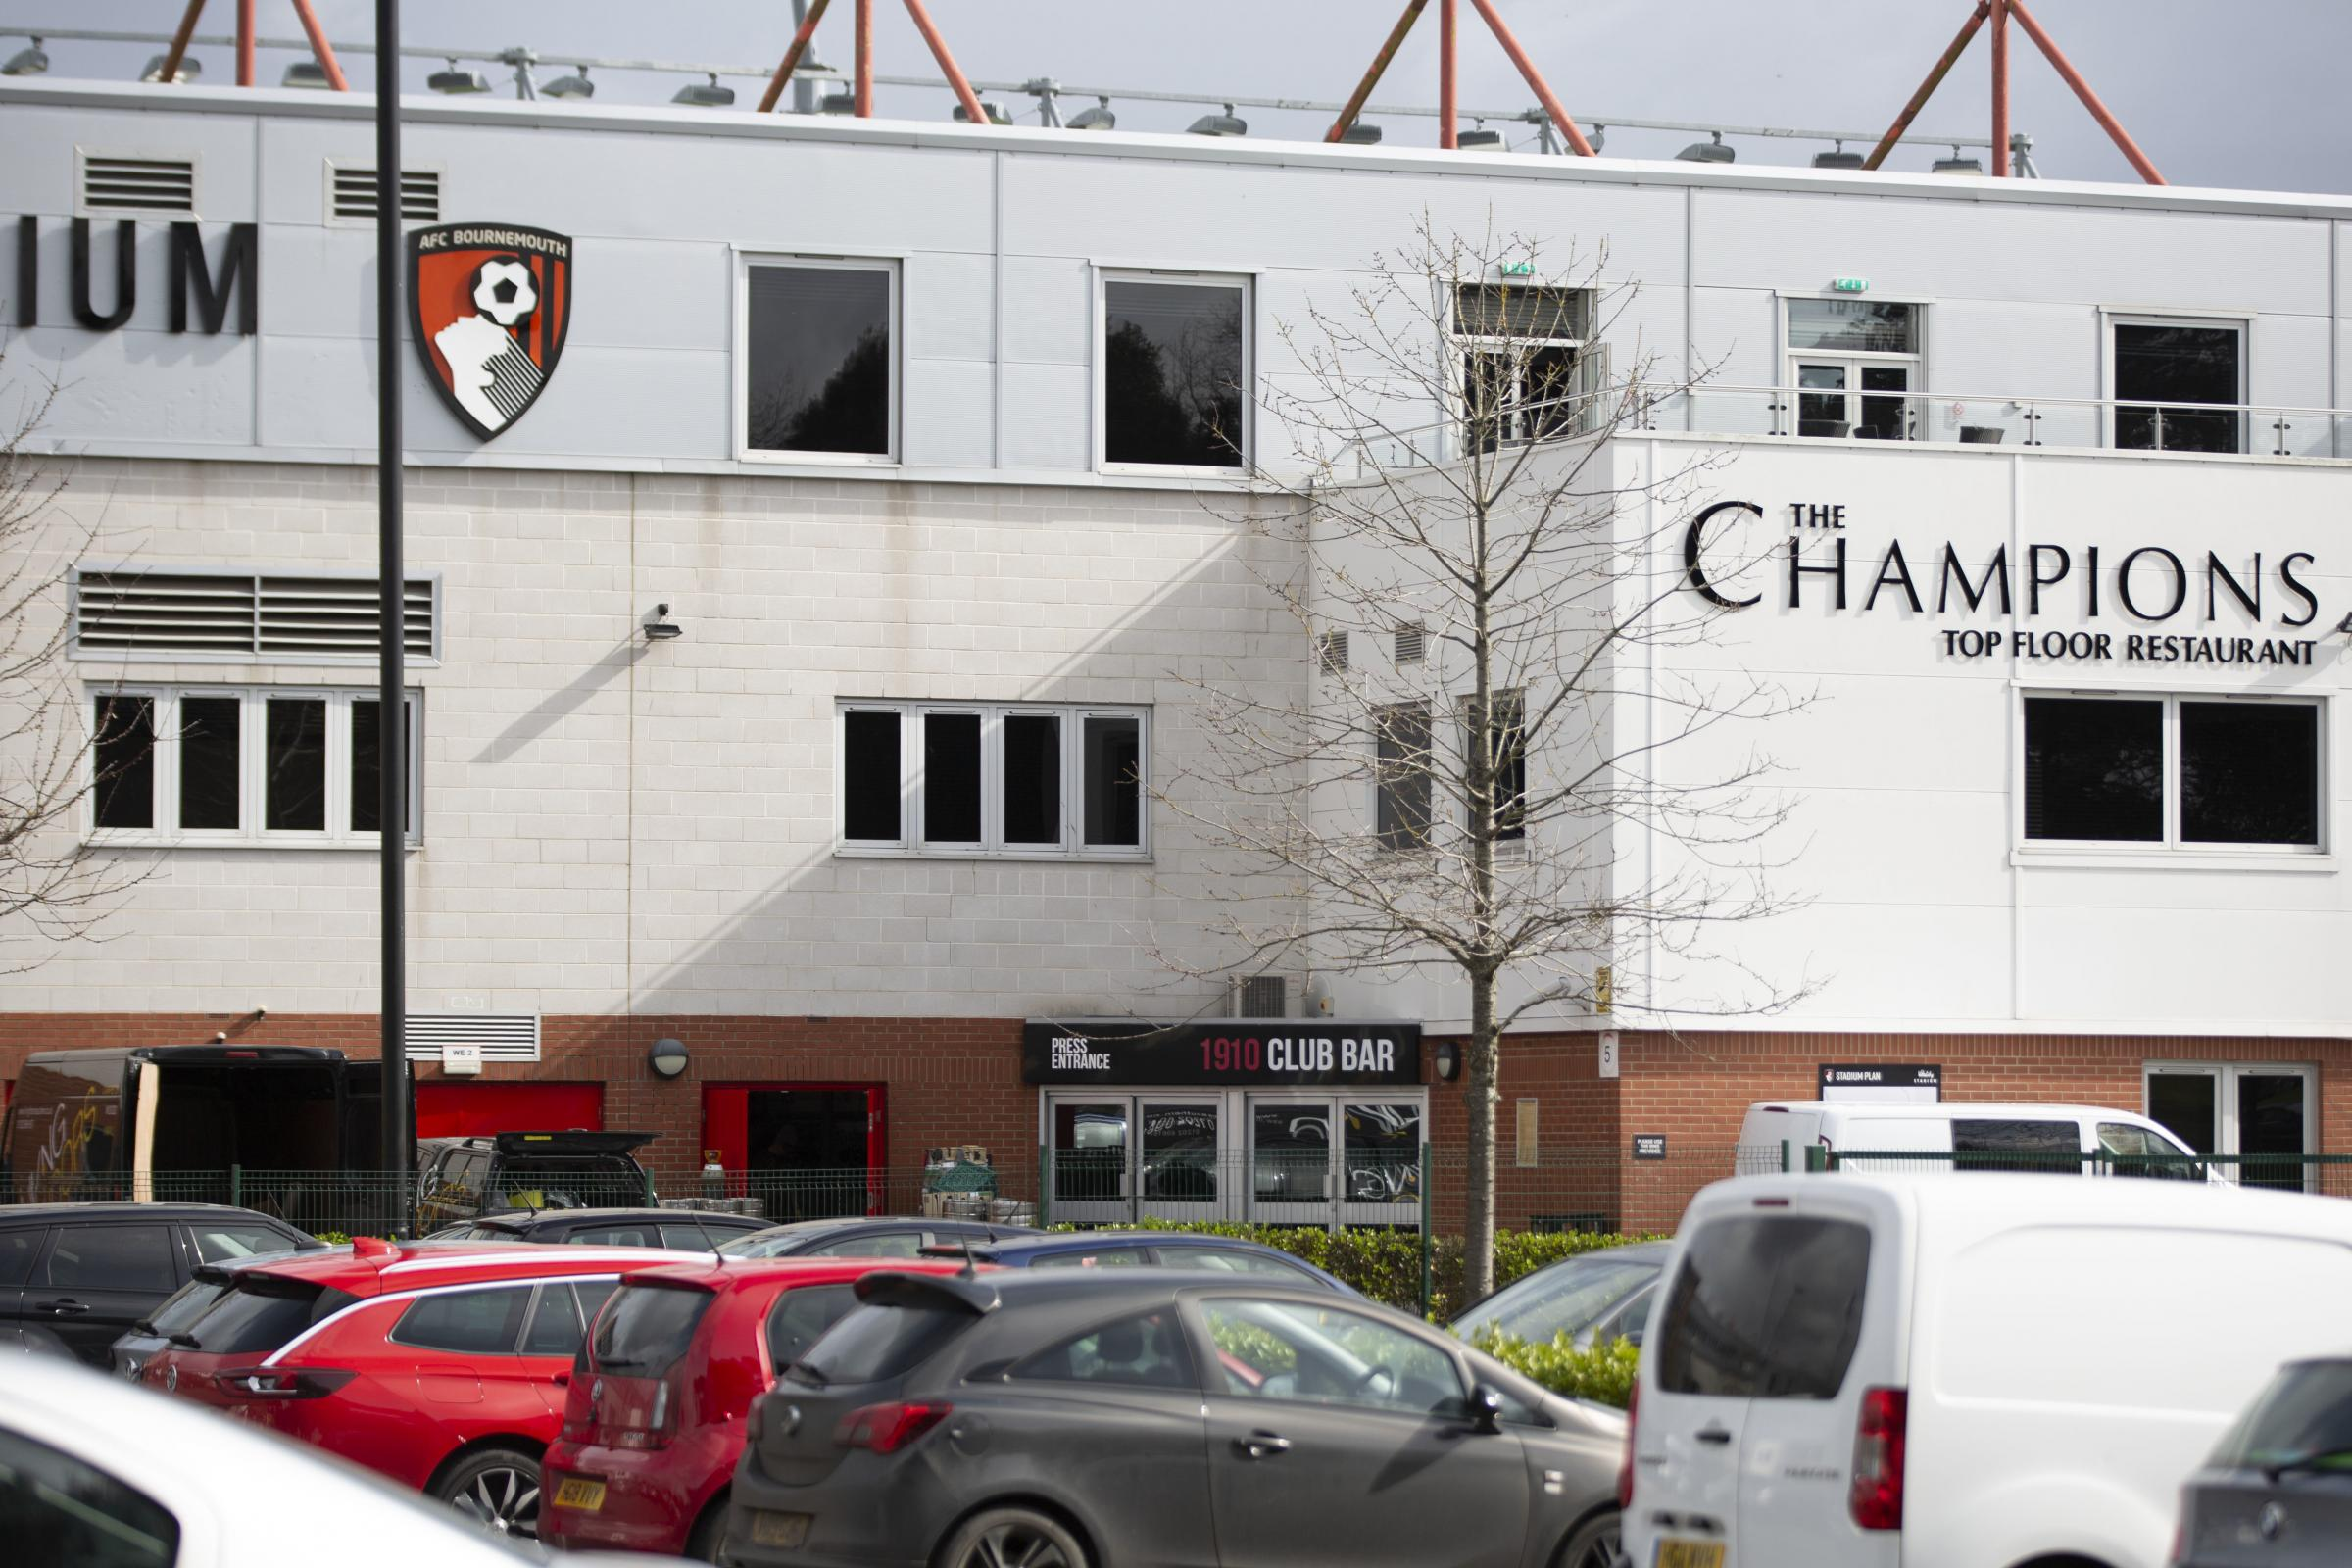 AFC Bournemouth reportedly 'prepared to pay £9million' for Ivan Toney